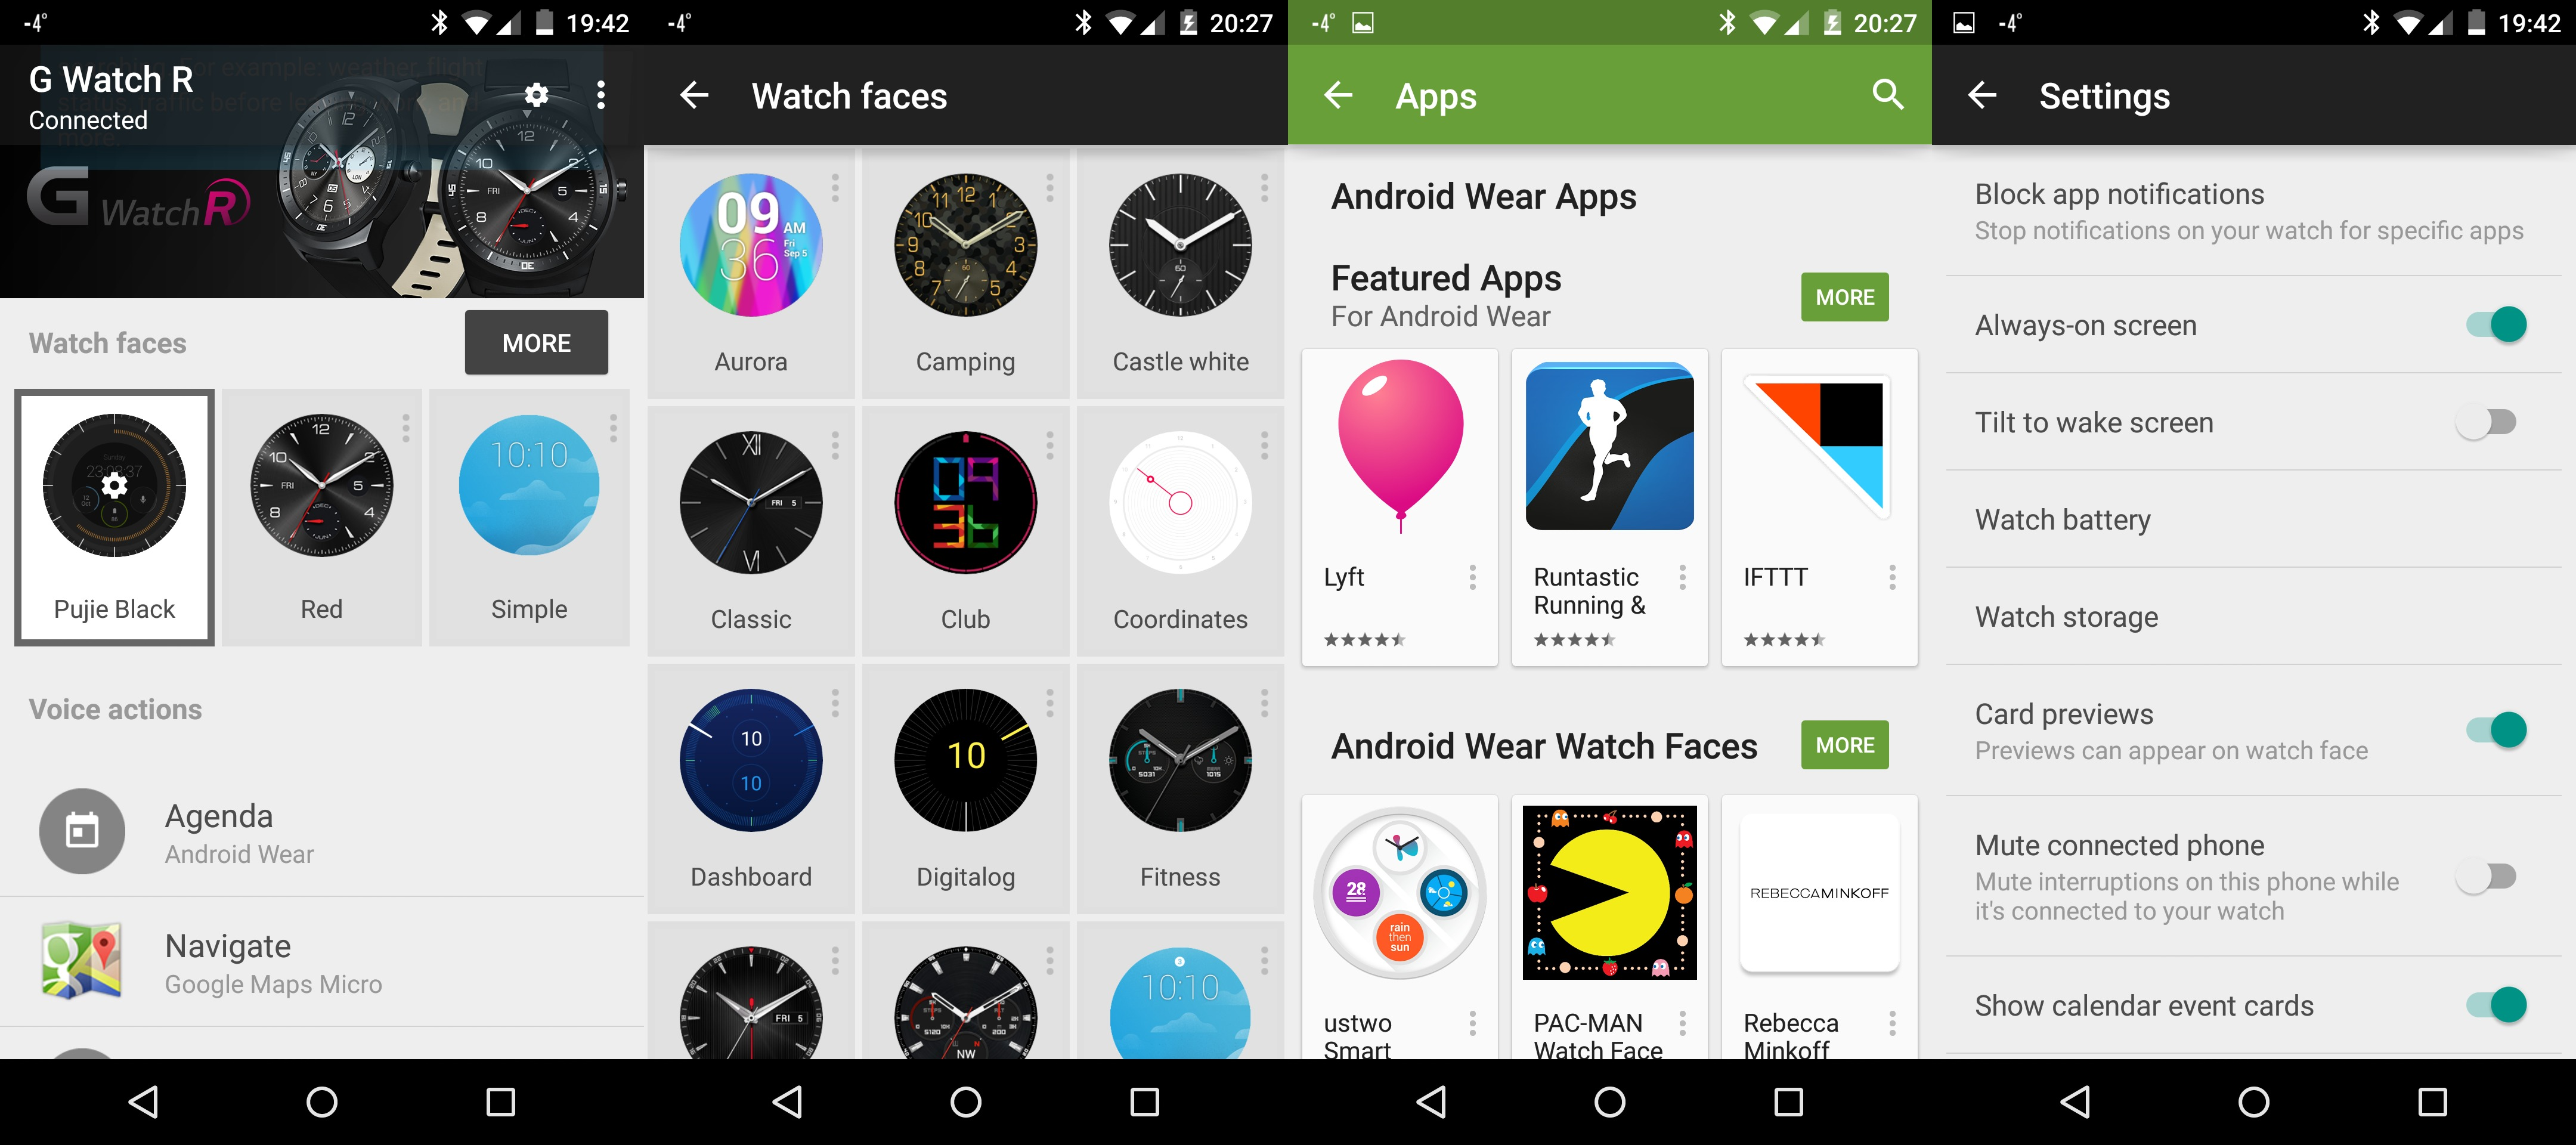 LG_G_watch_R_android_wear_settings